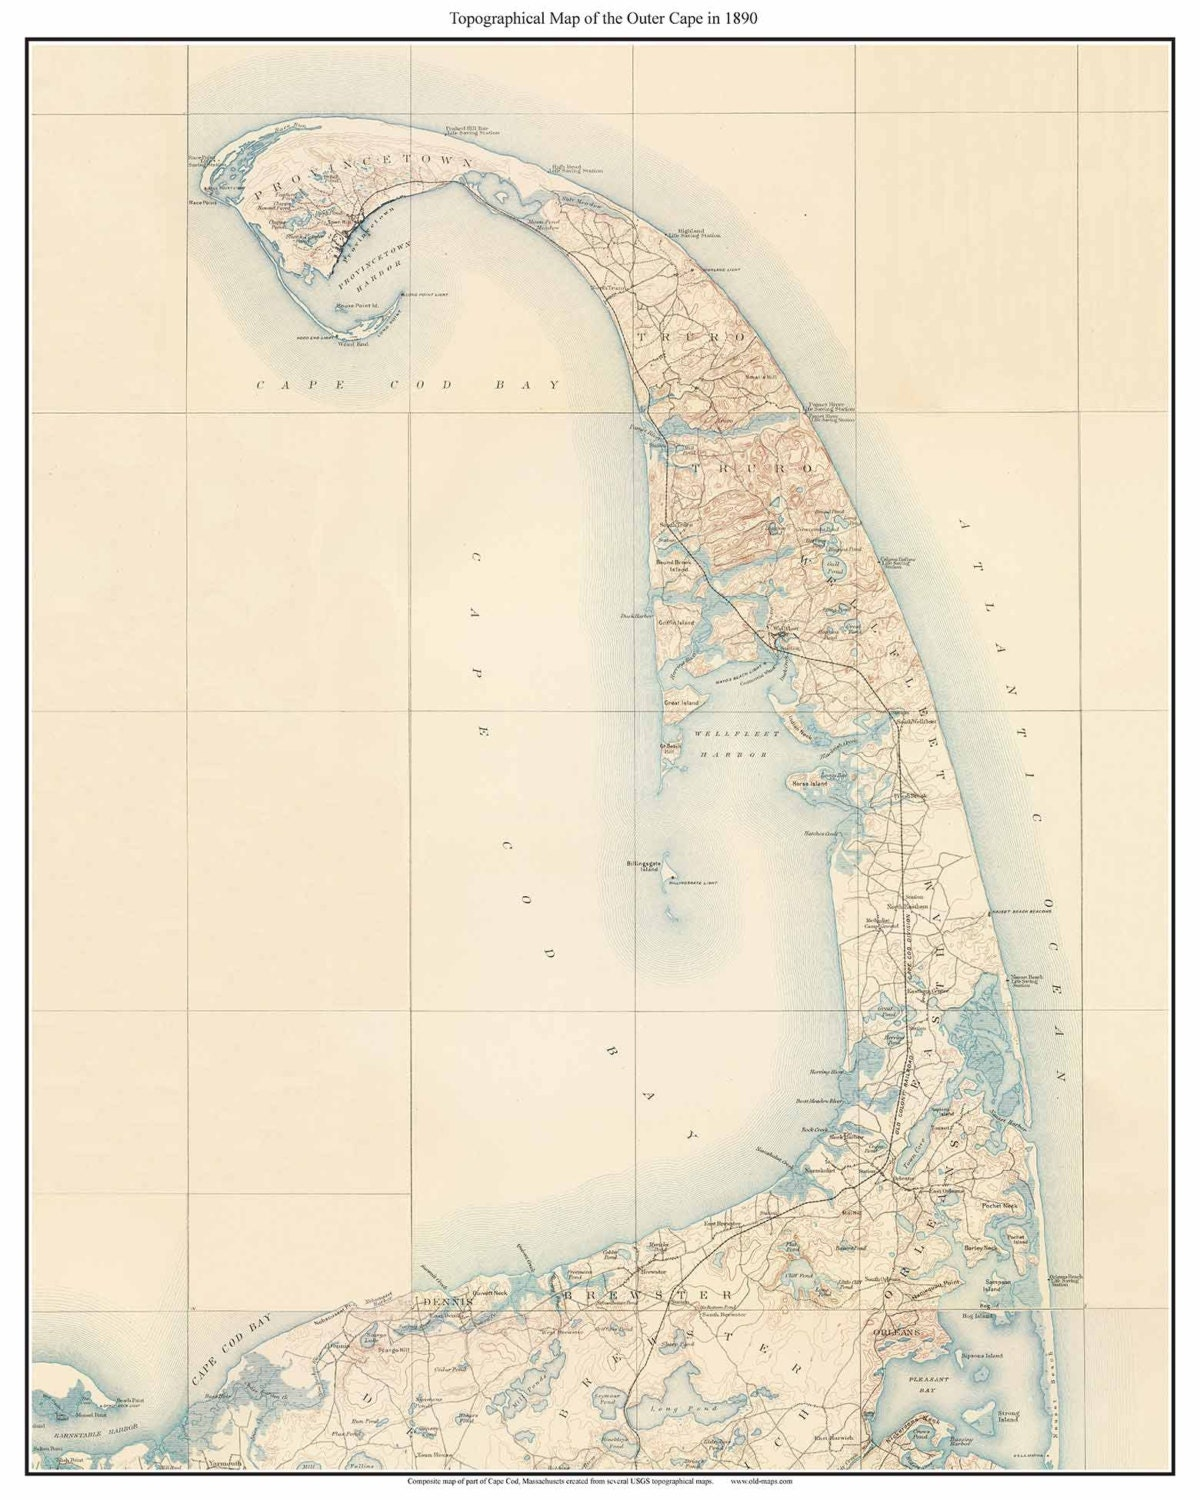 Eastham Cape Cod Map: Cape Cod Regions OUTER CAPE 1890 Old Topo Map Massachusetts